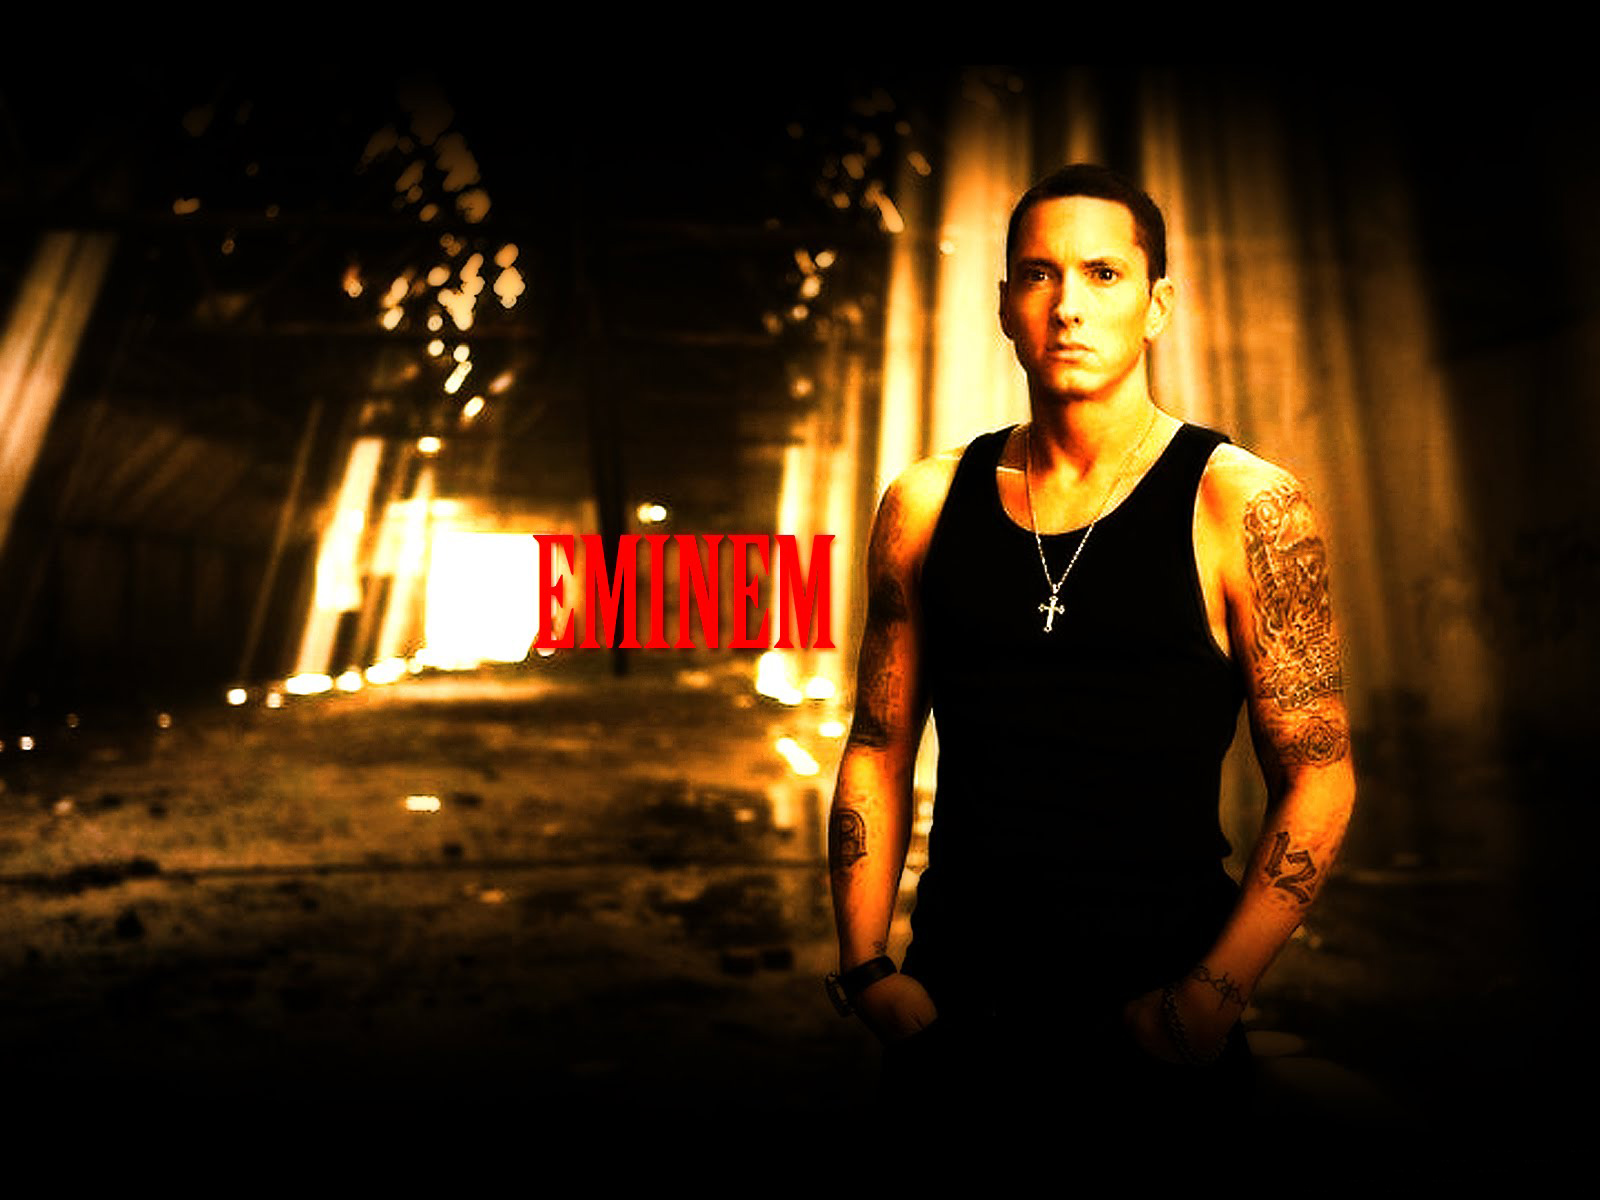 eminem wallpapers - photo #29